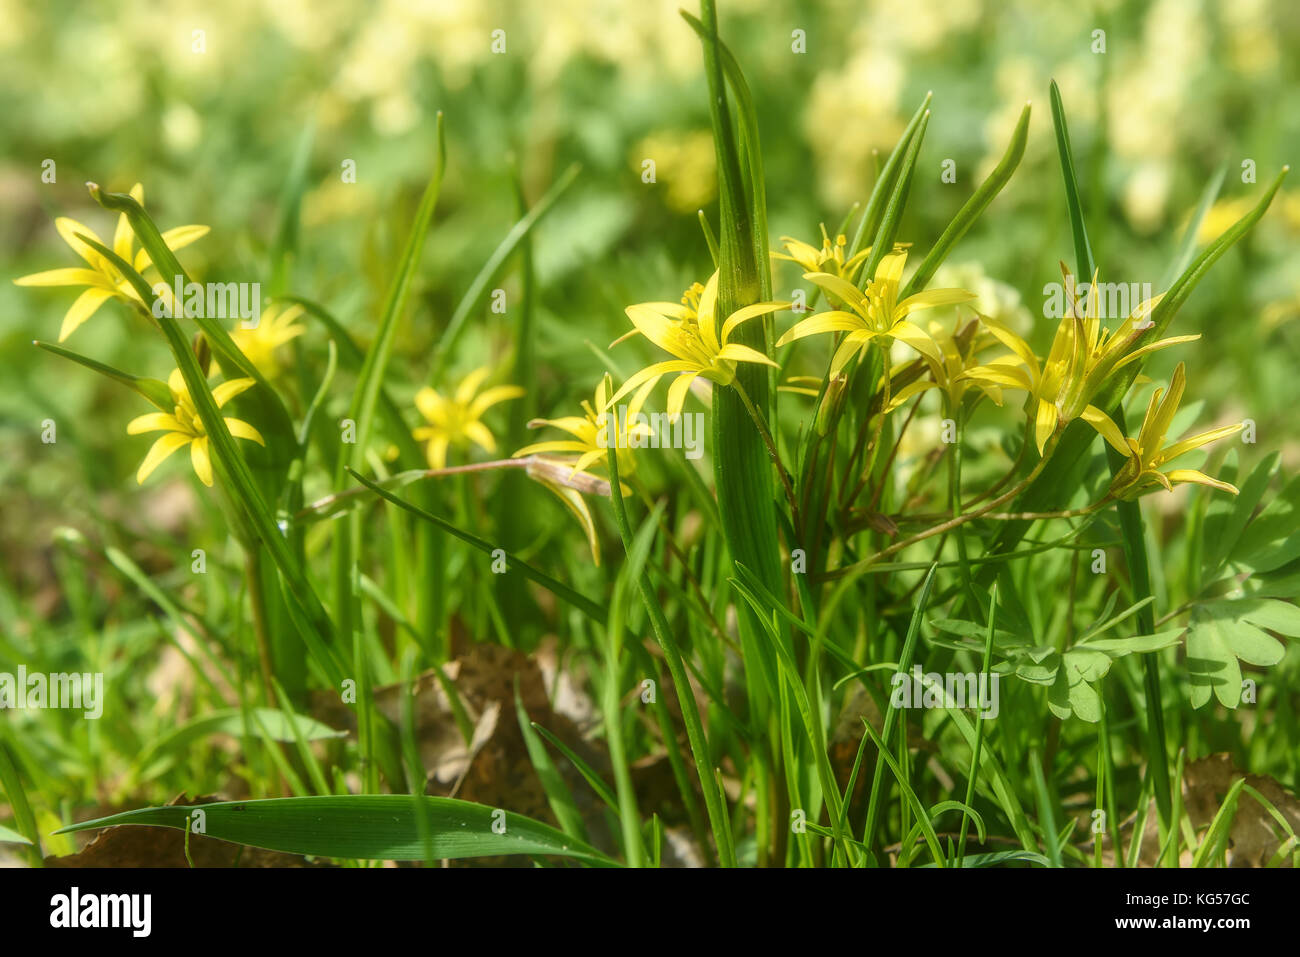 Beautiful spring floral background with bright small yellow flowers beautiful spring floral background with bright small yellow flowers gagea in the grass close up on a sunny day mightylinksfo